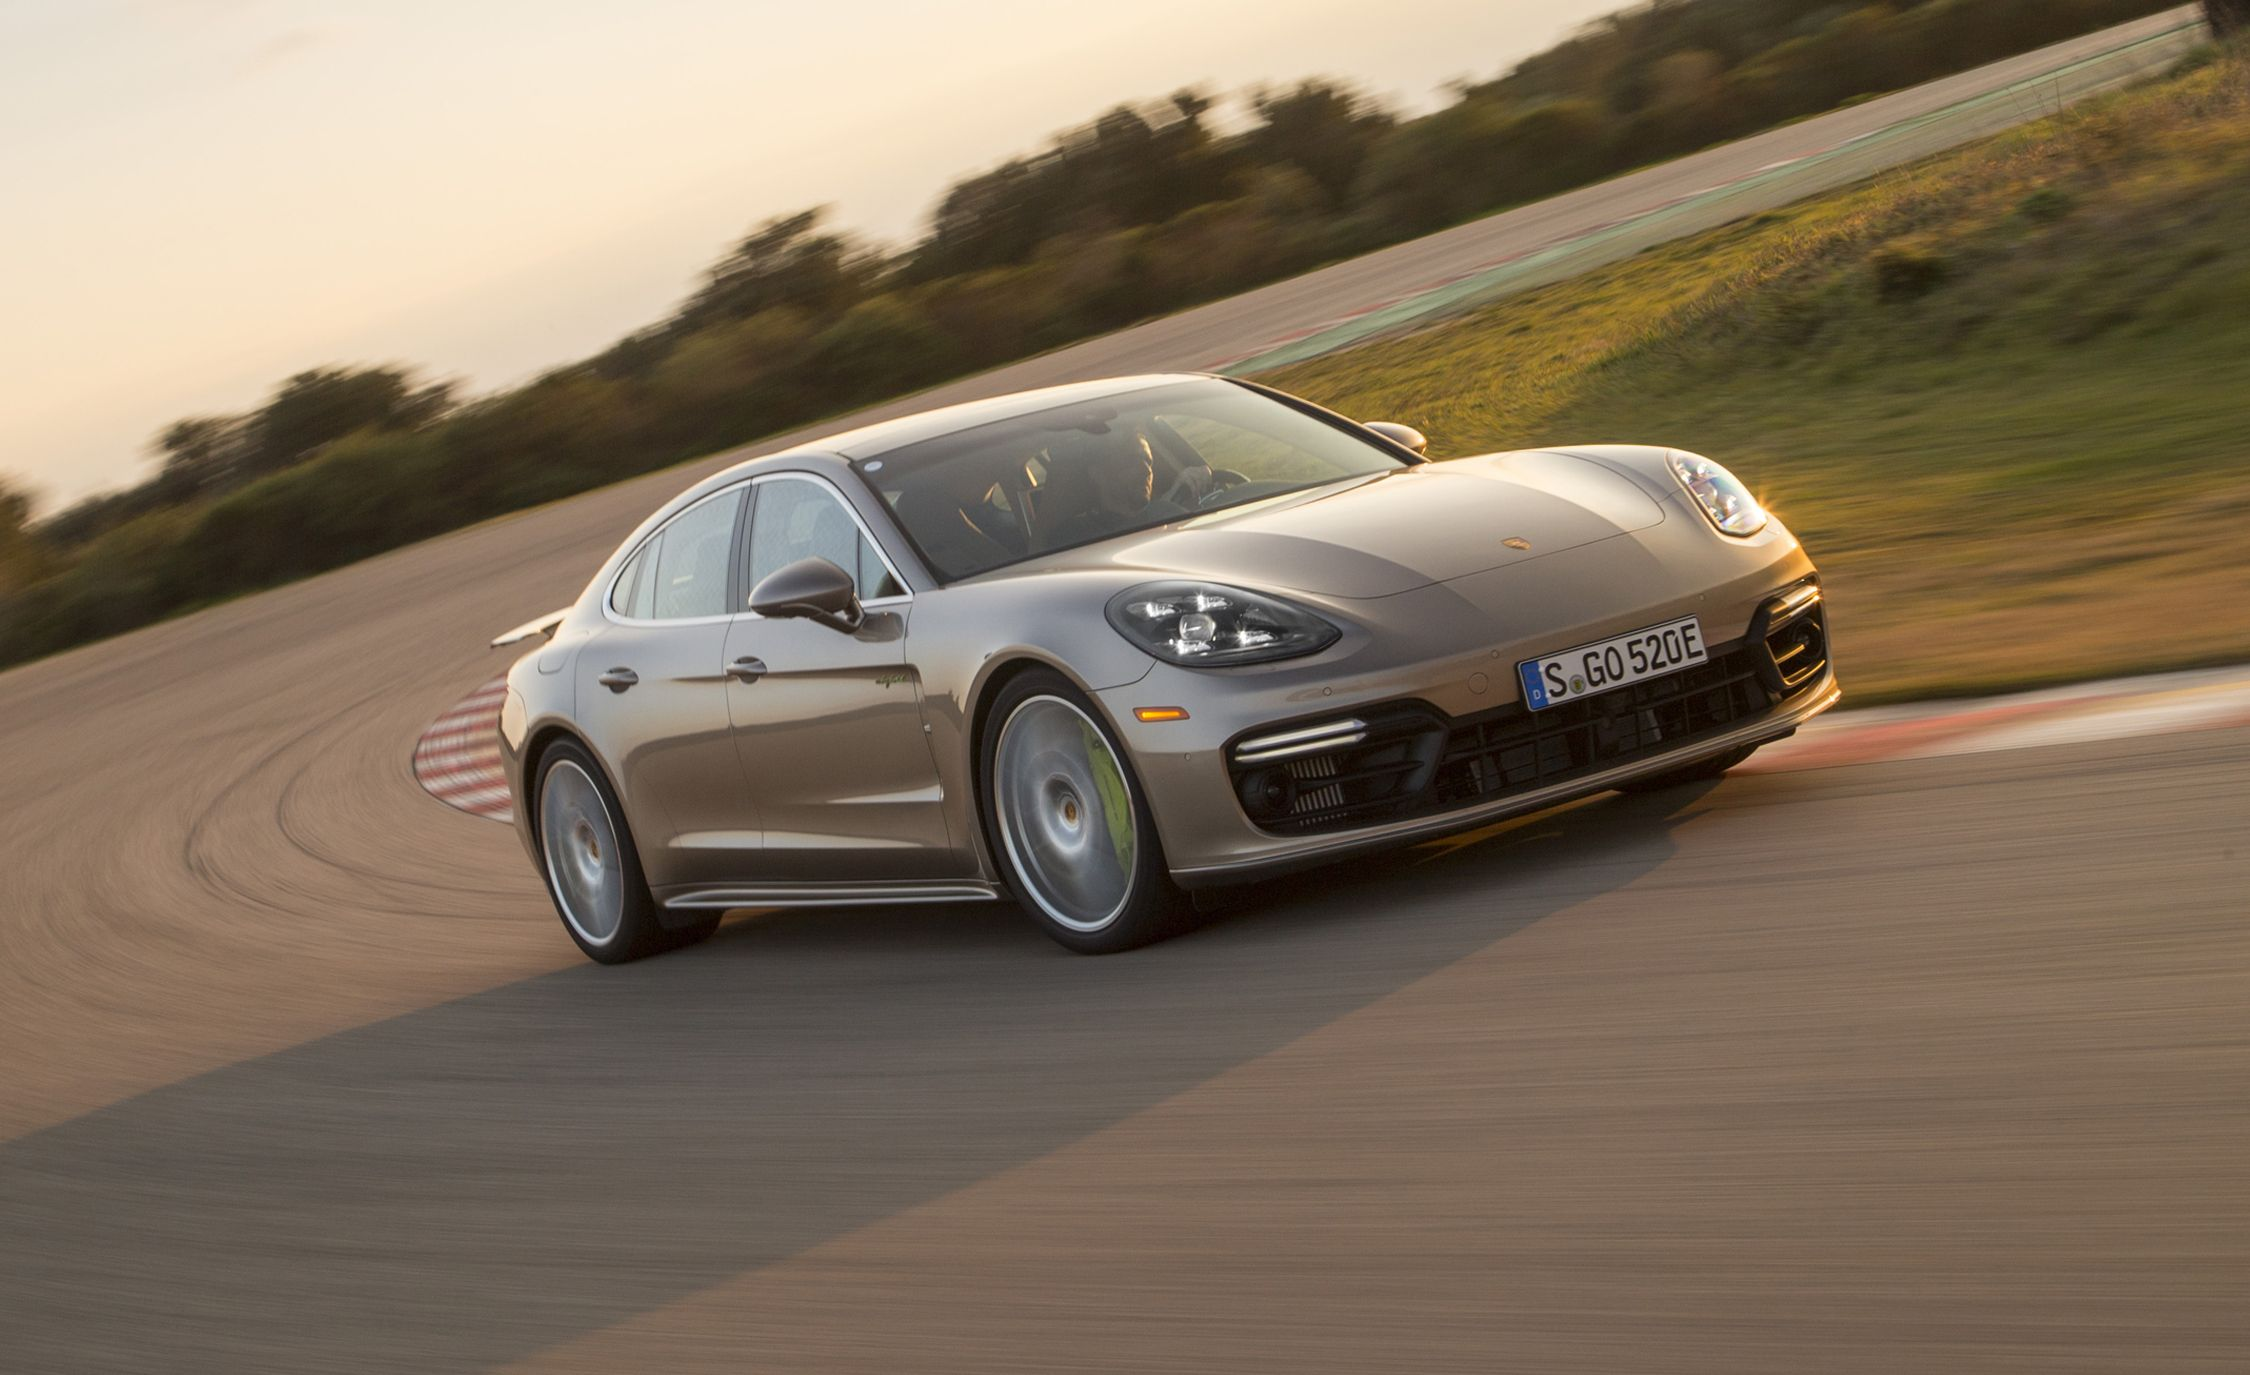 2018 Porsche Panamera Turbo S E Hybrid First Ride Review Car And Driver